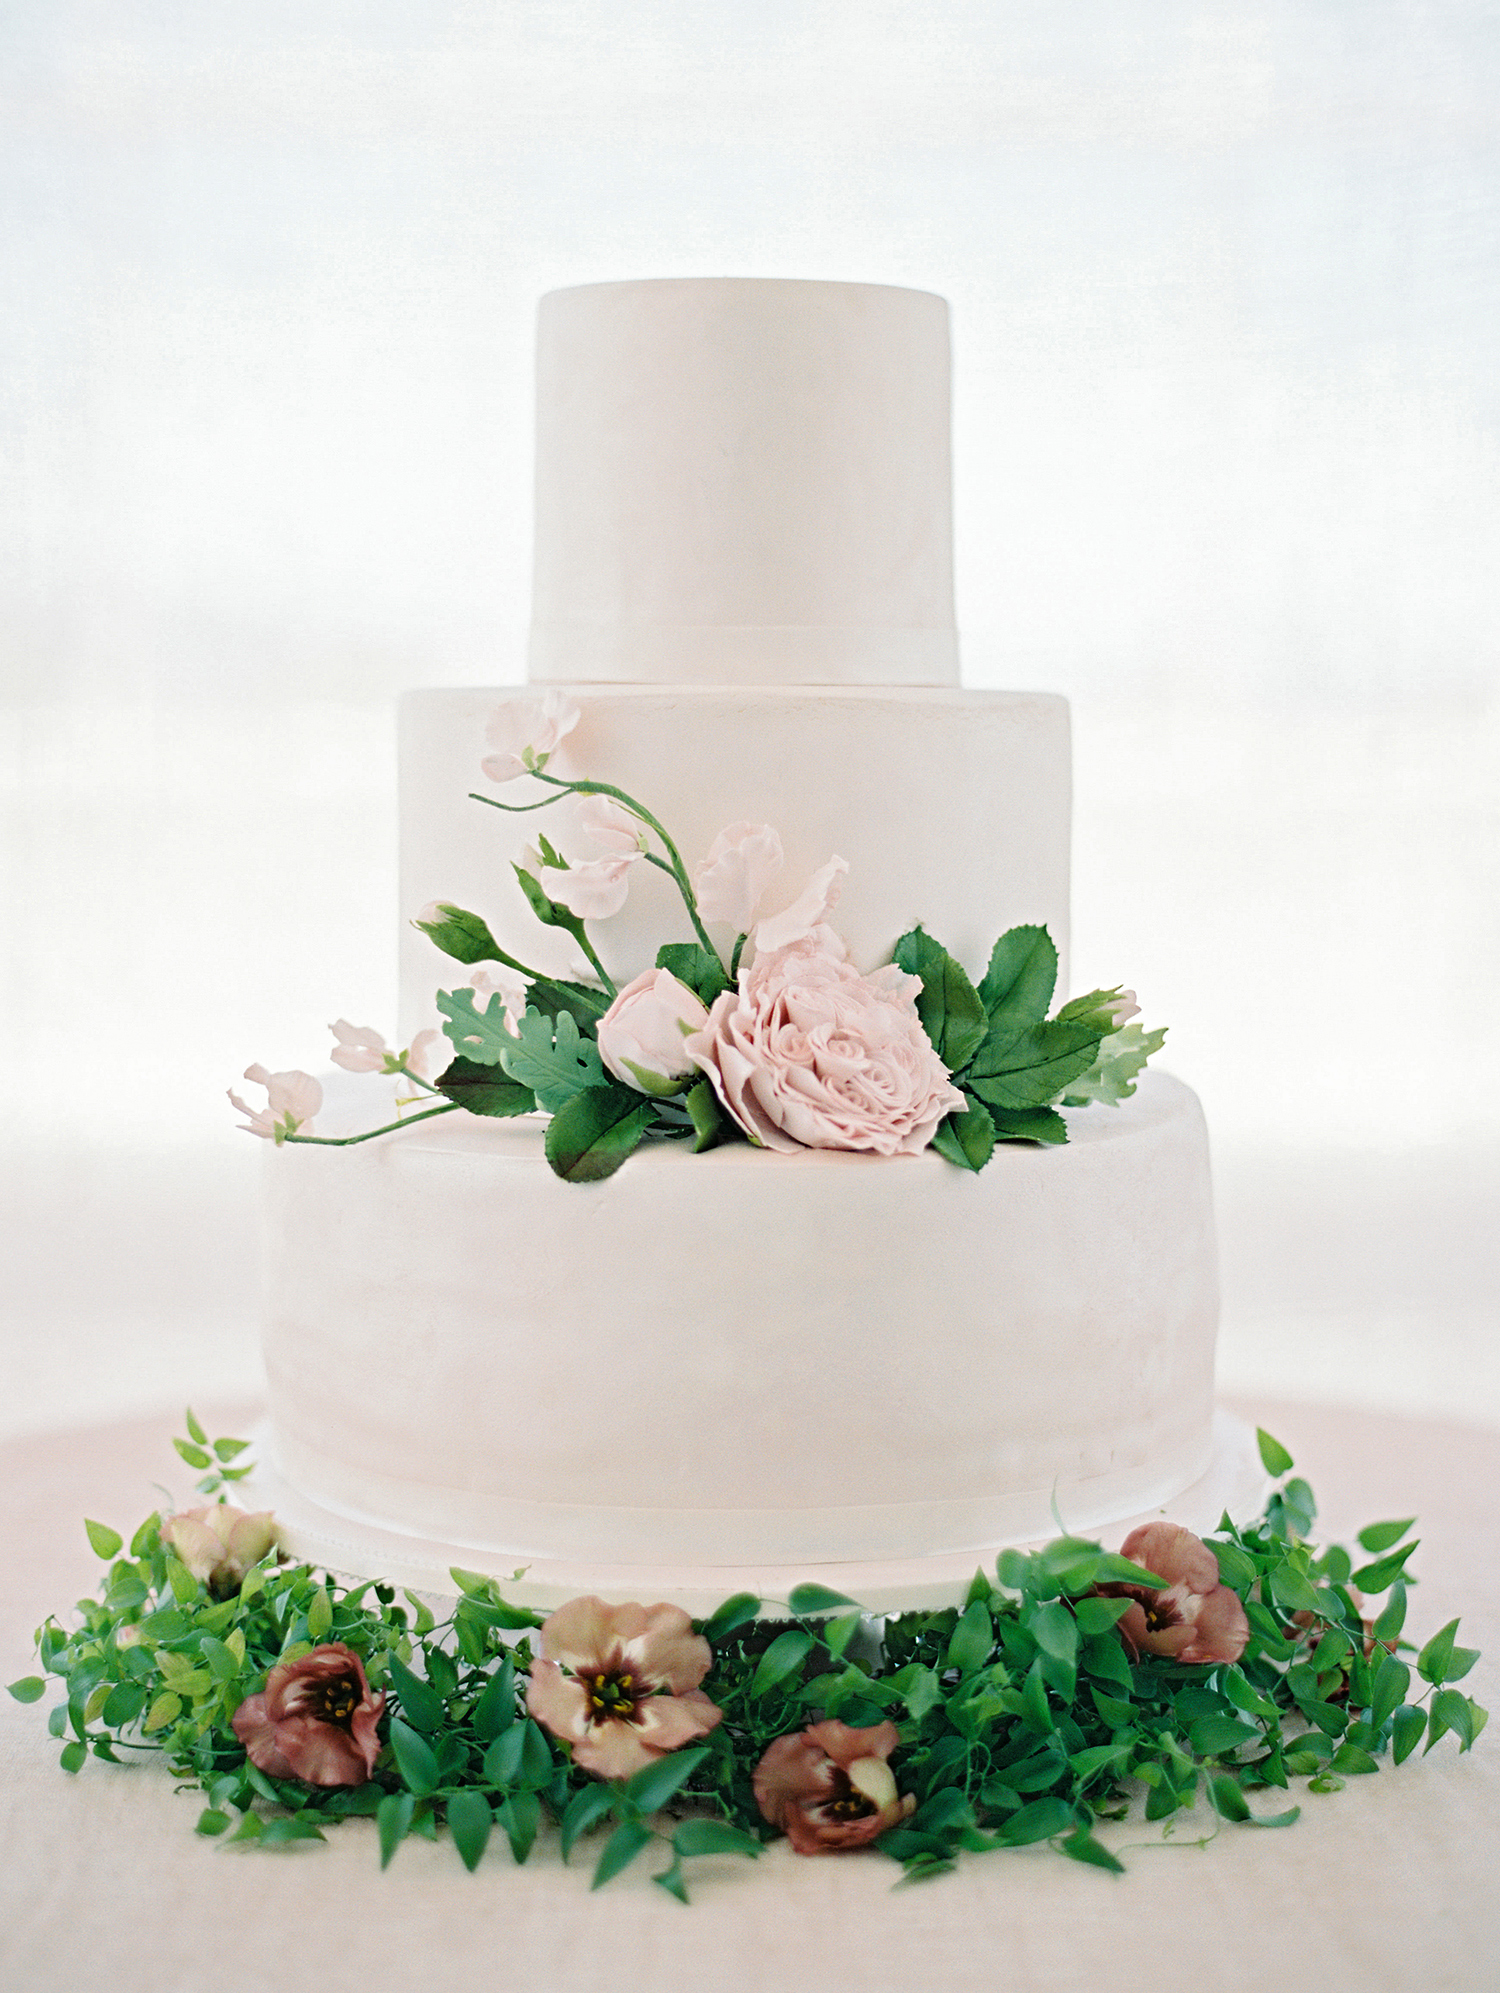 How to Order a Cutting Cake and Sheet Cakes for Your Wedding